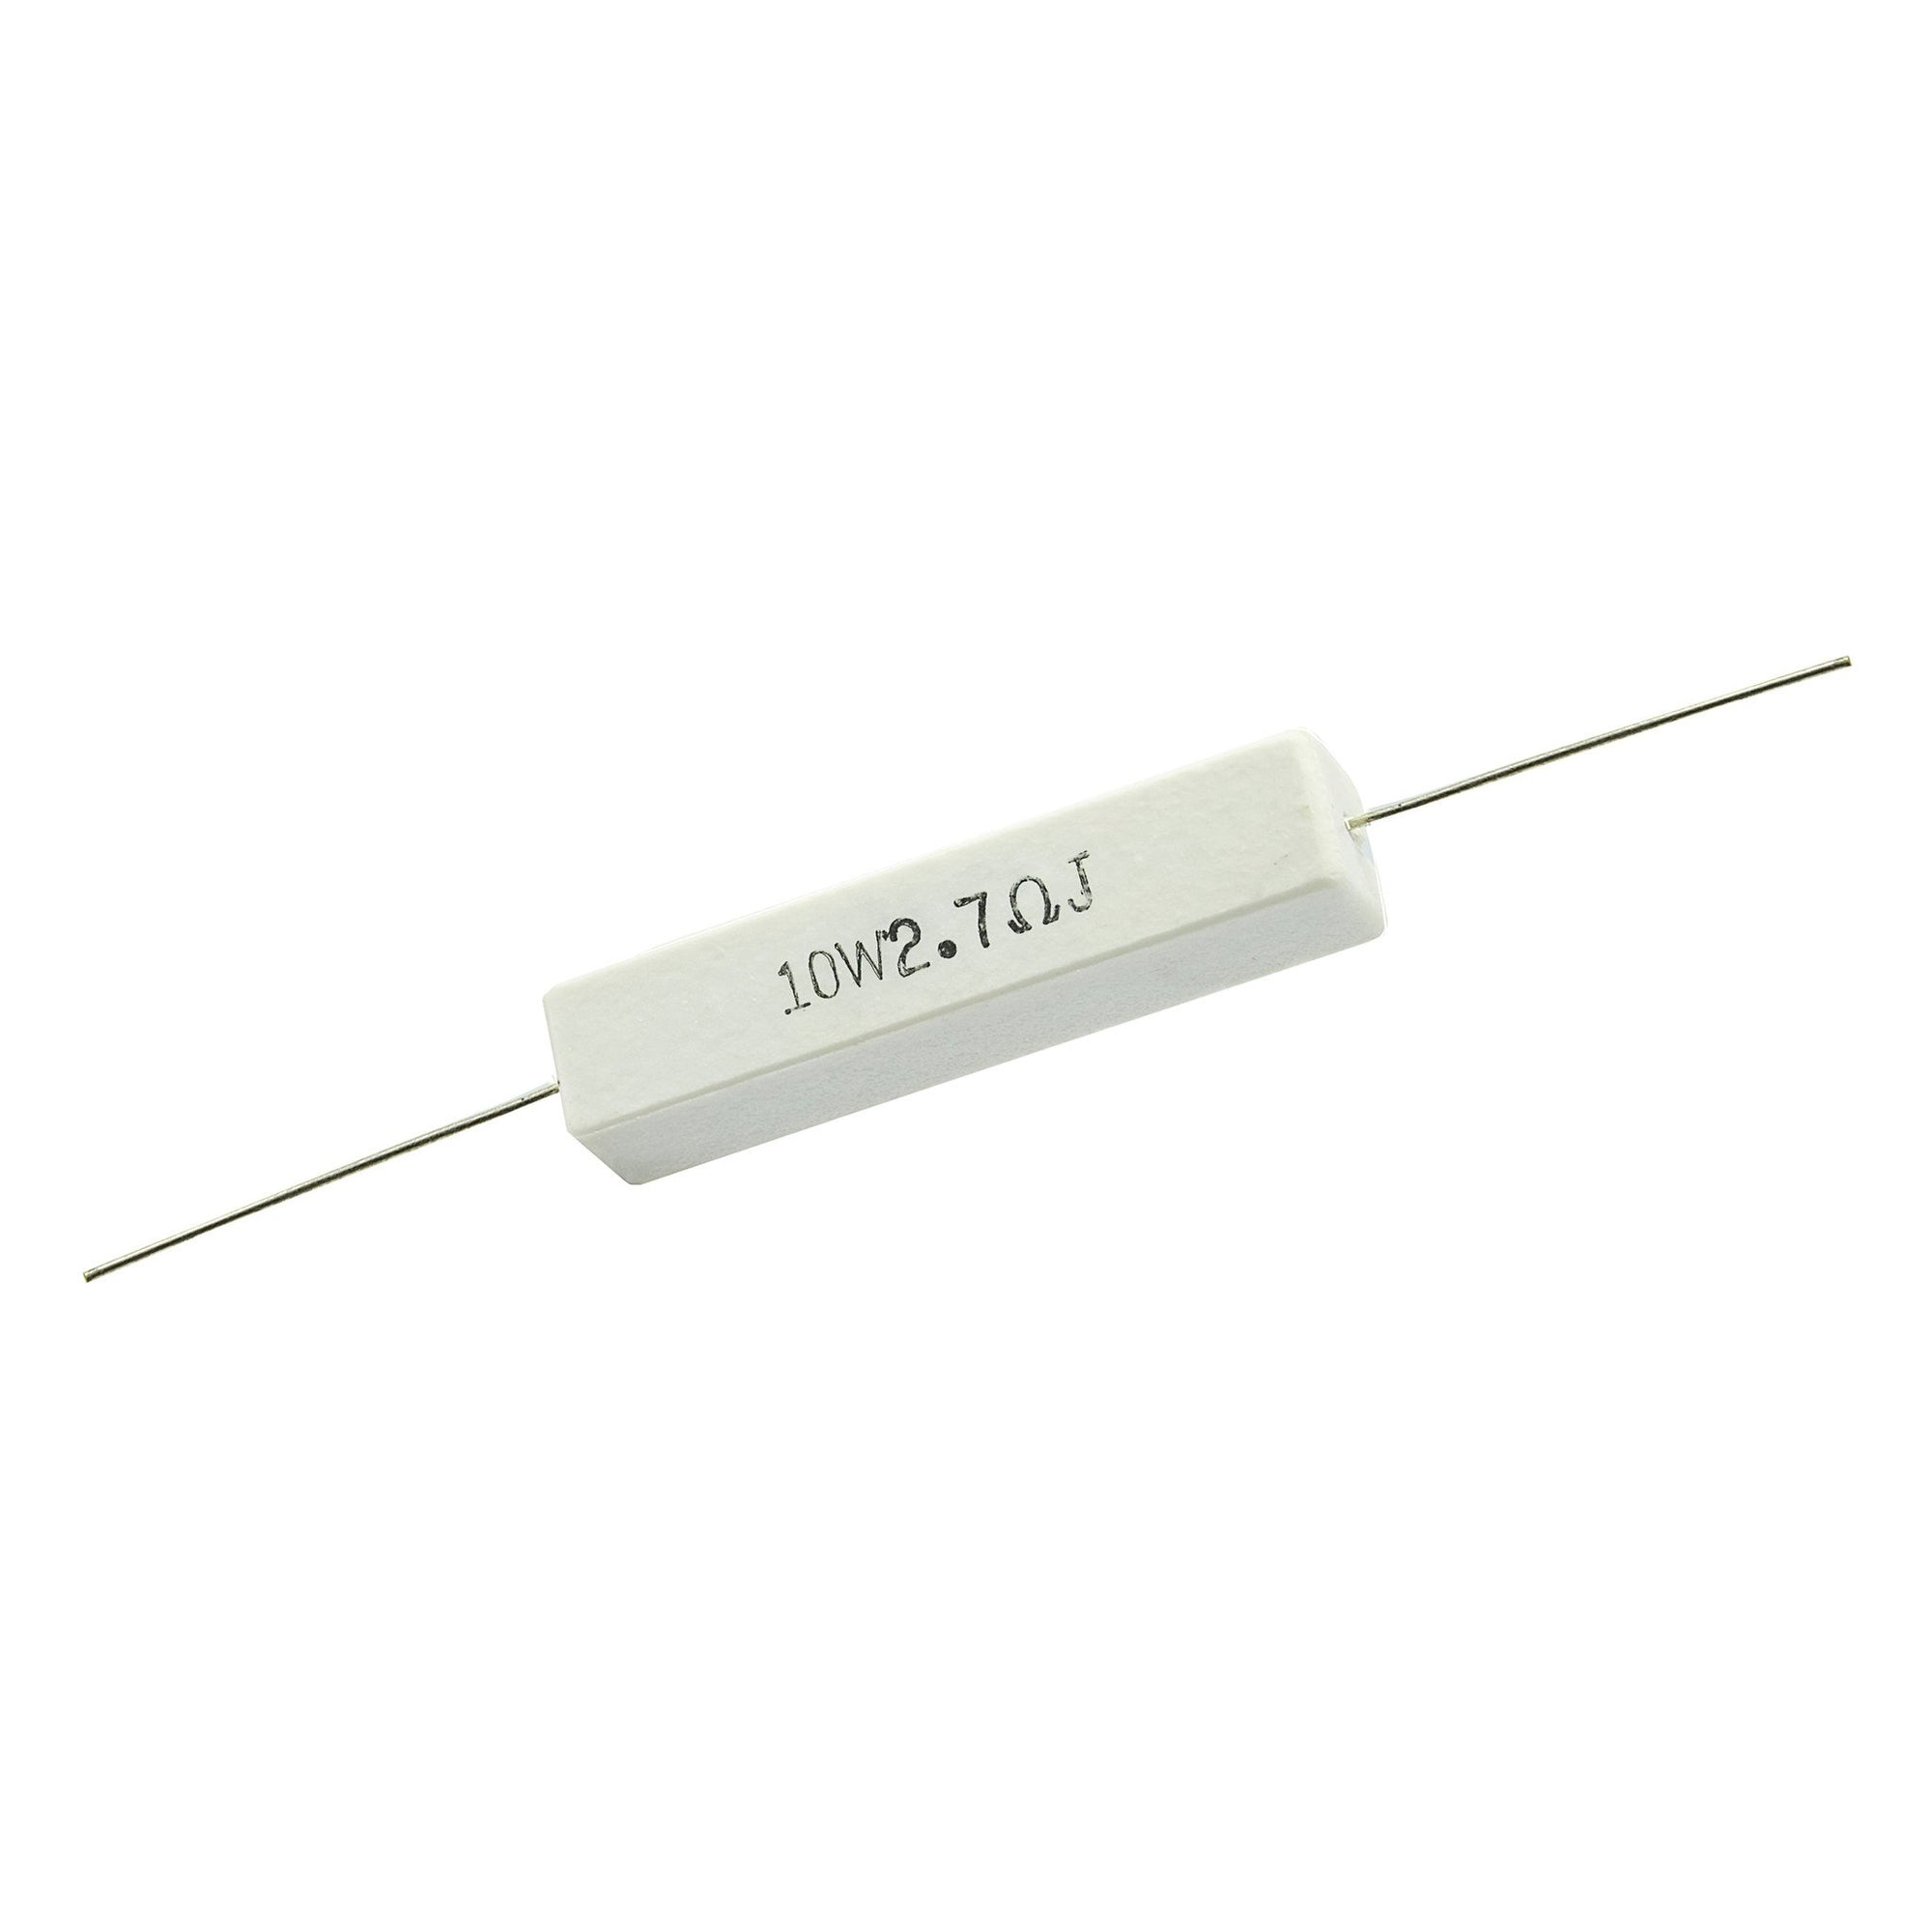 2.7 Ohm 10 Watt 5% Ceramic Wirewound Resistor - Willys-Hifi Ltd